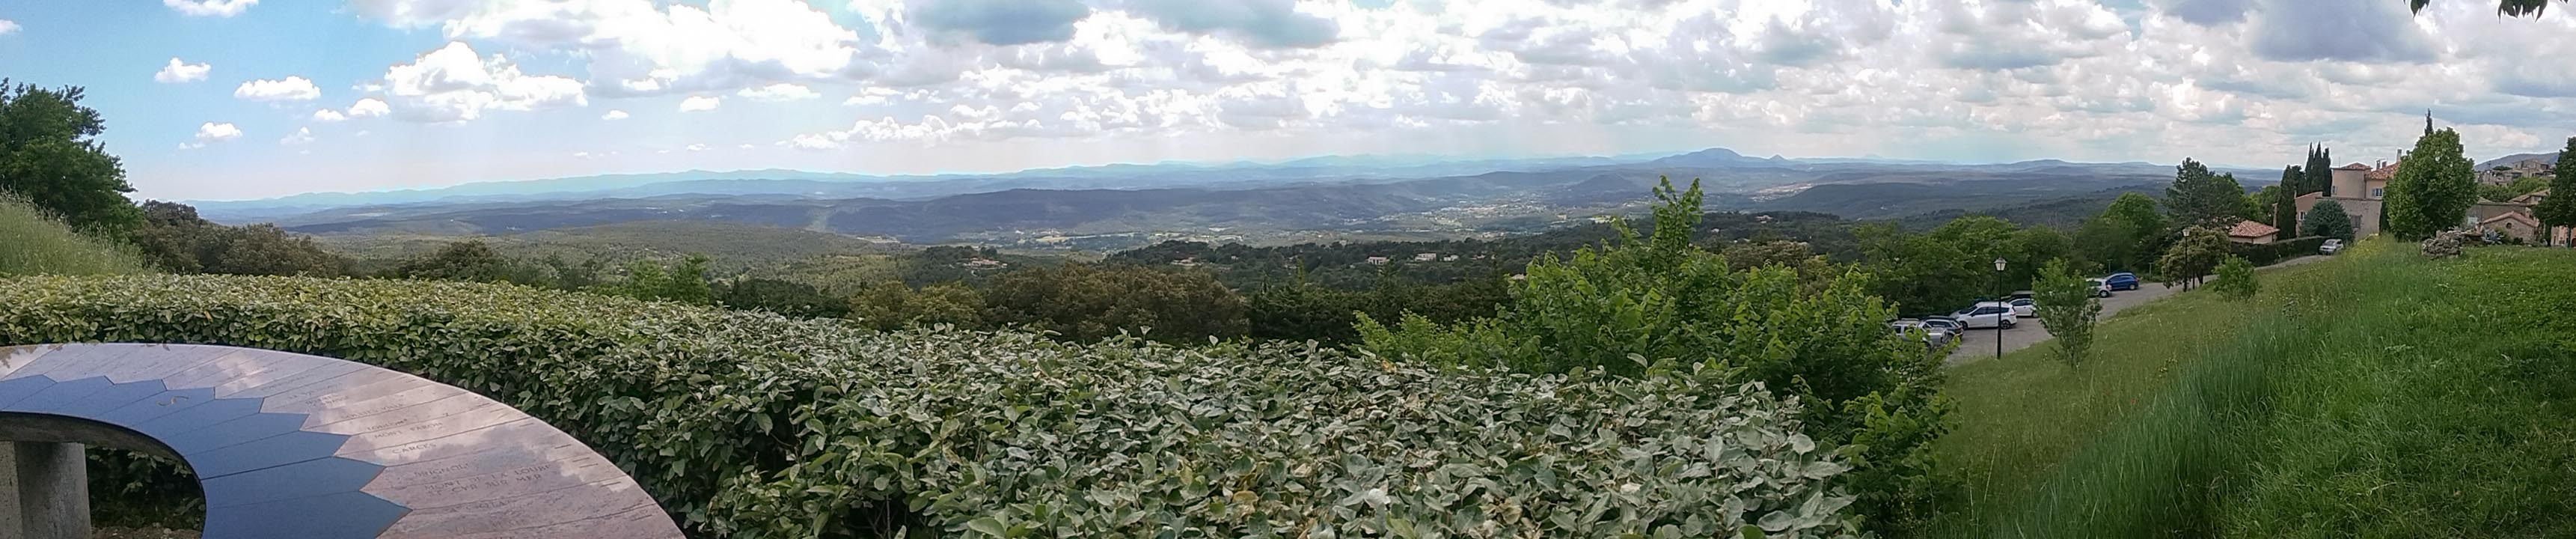 2018 05 Provence PanoramaTablet 001